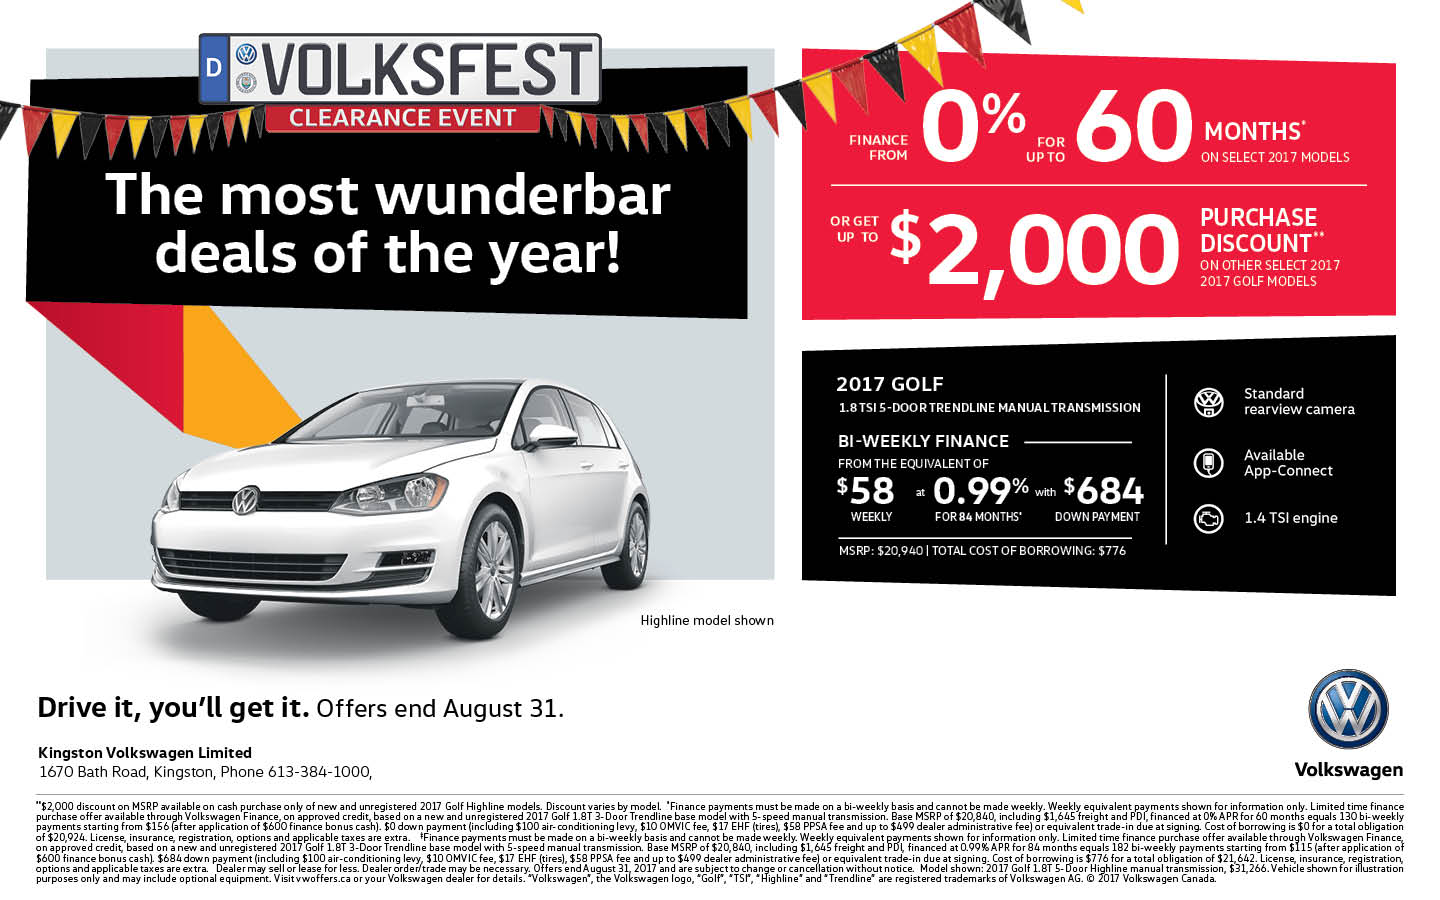 2017 Golf | Volksfest Clearance Event